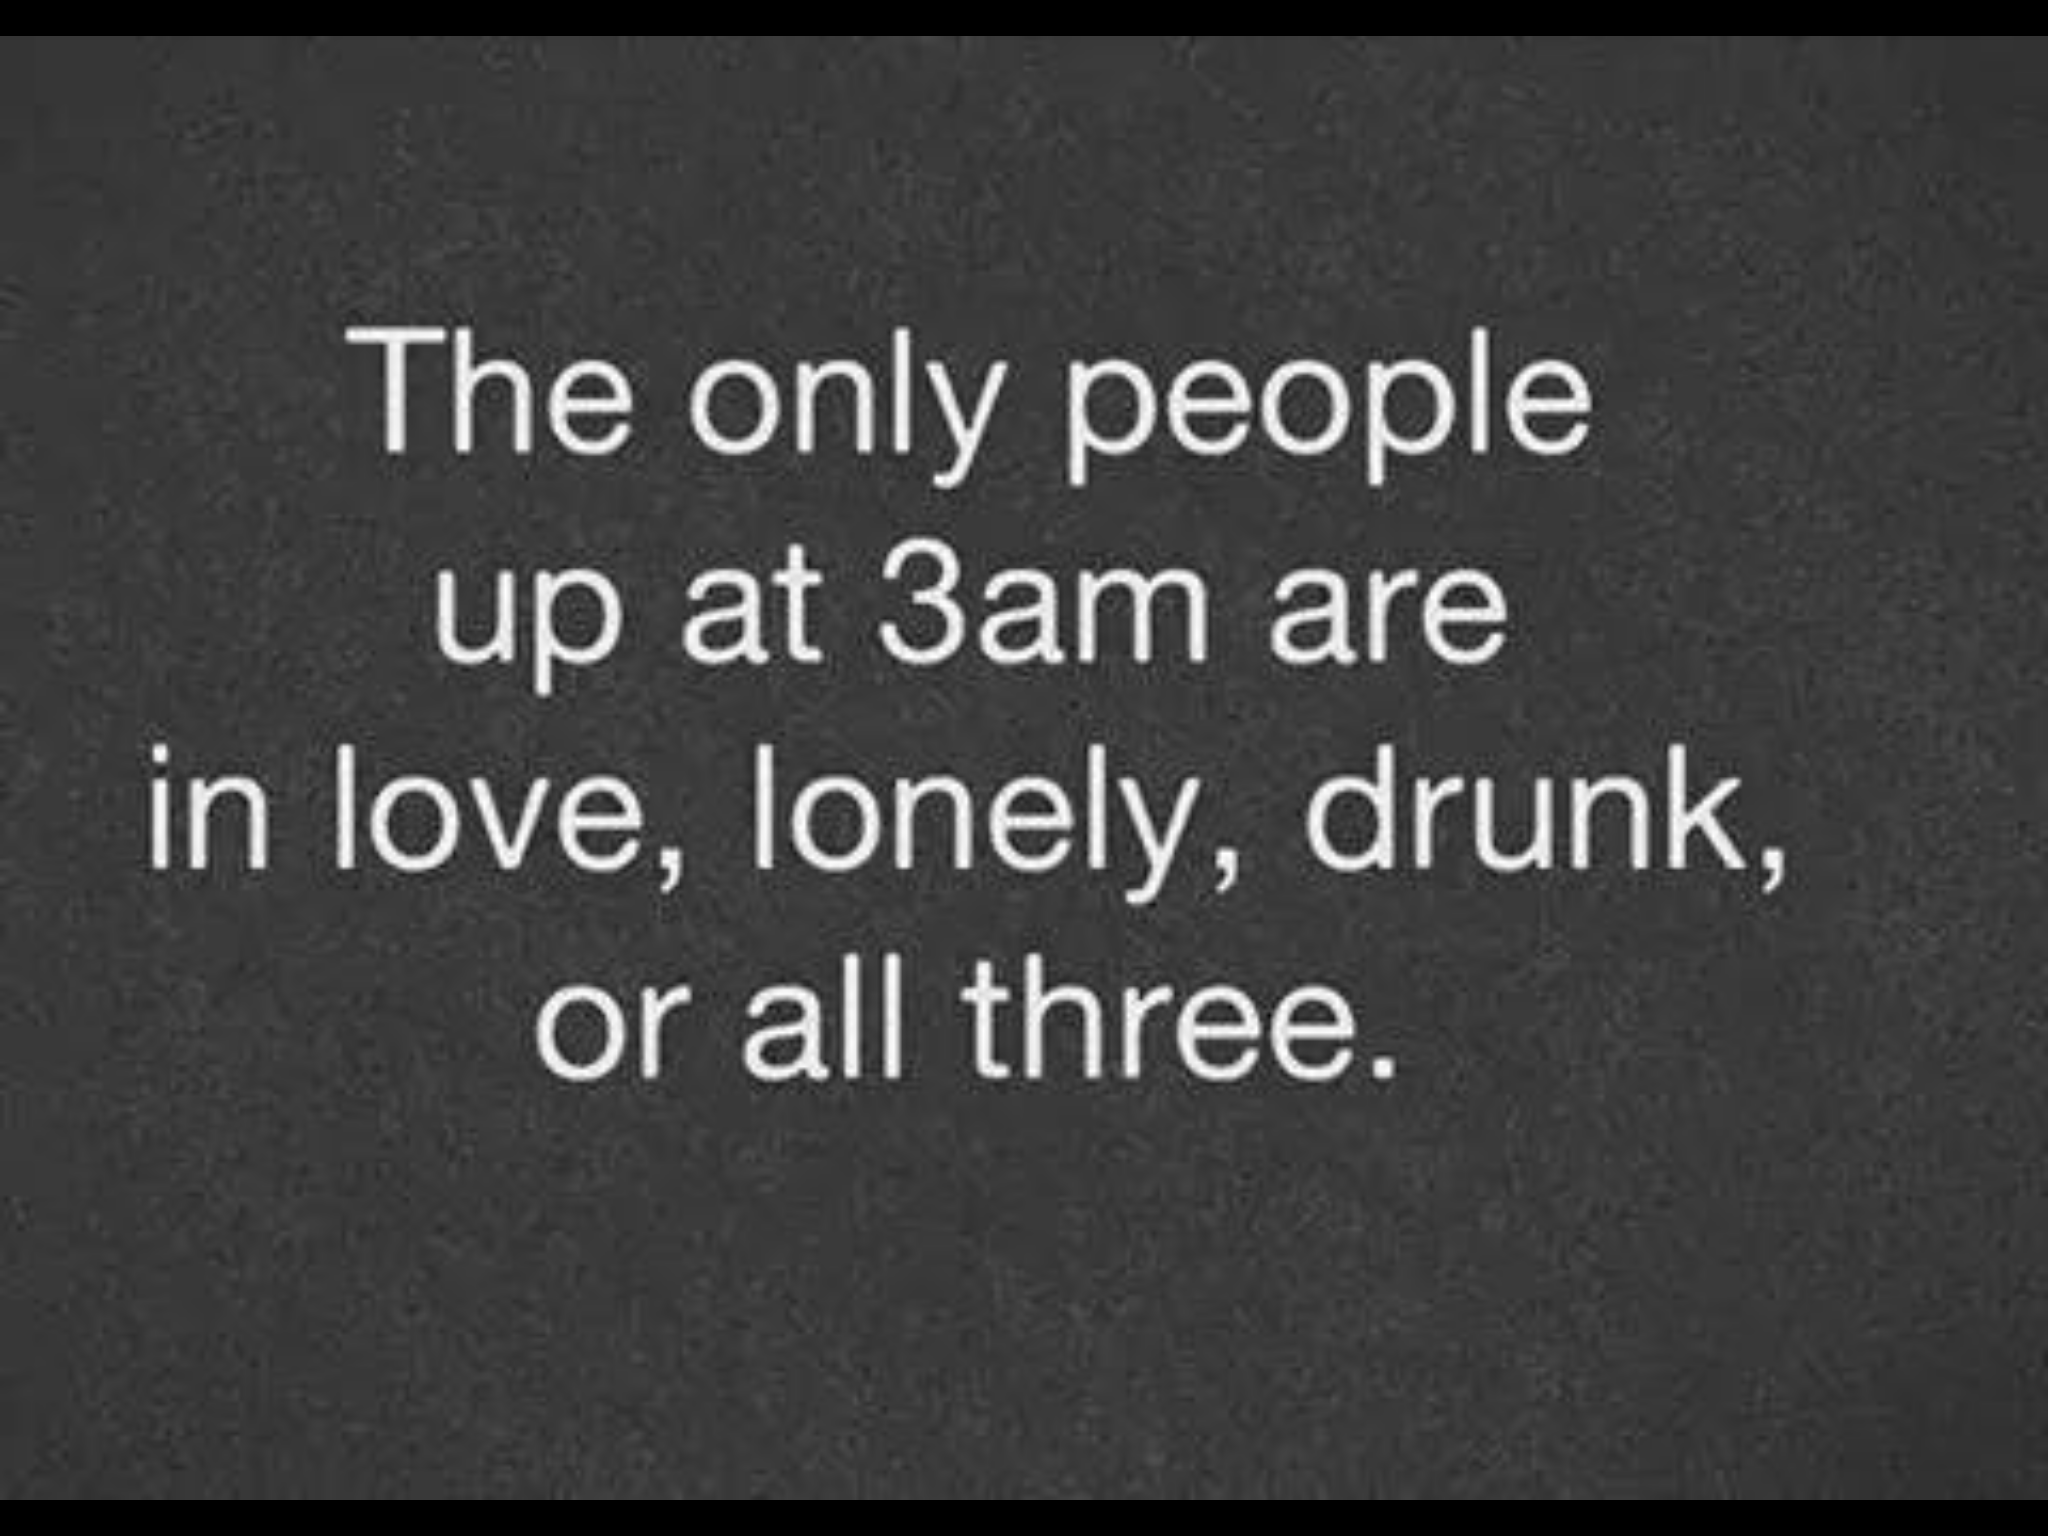 The only people